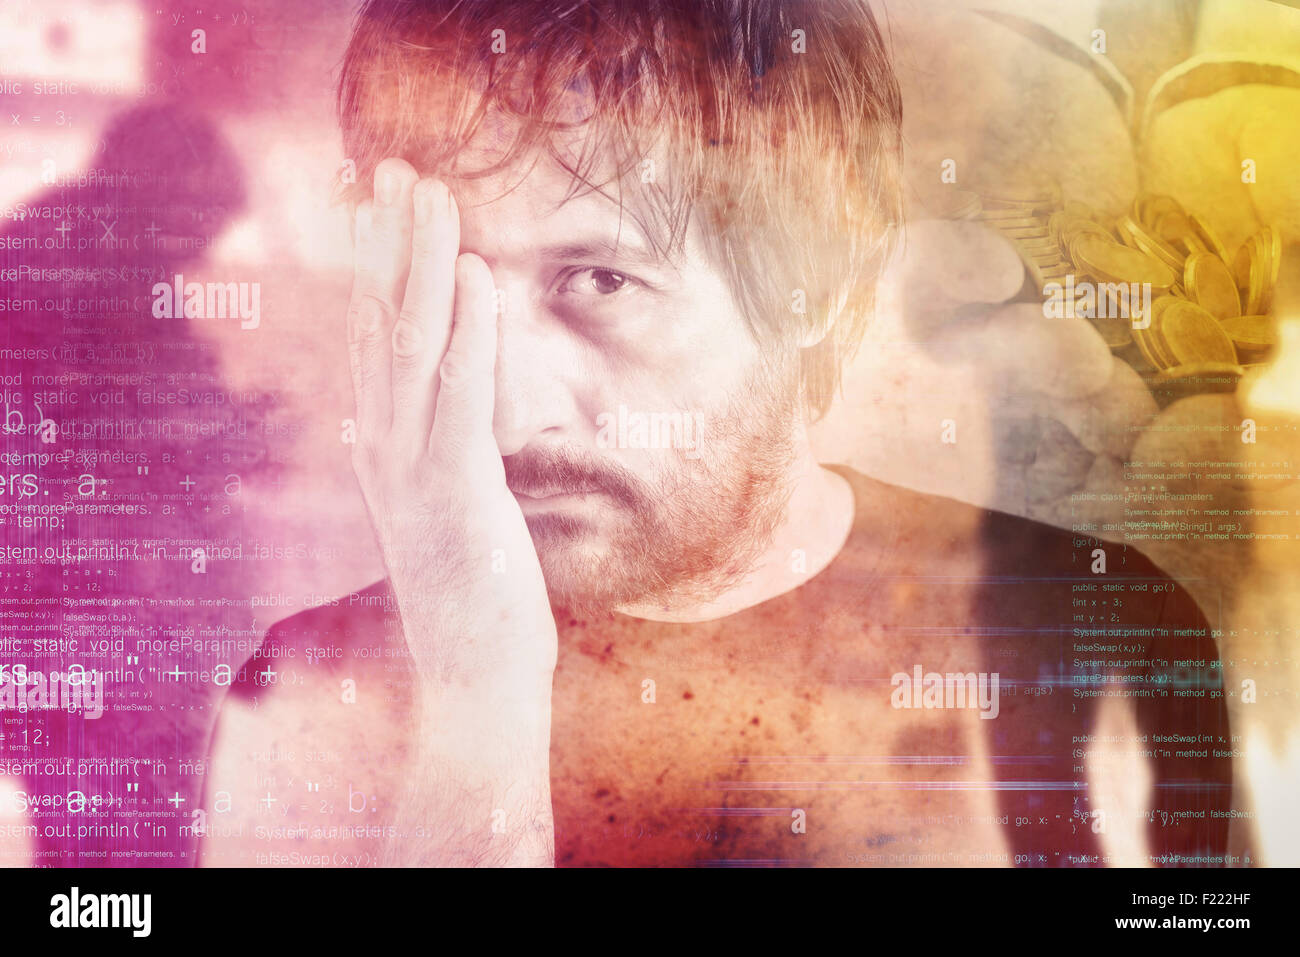 Double exposure portrait of man in financial trouble, money problems, drowned by debt concept. - Stock Image